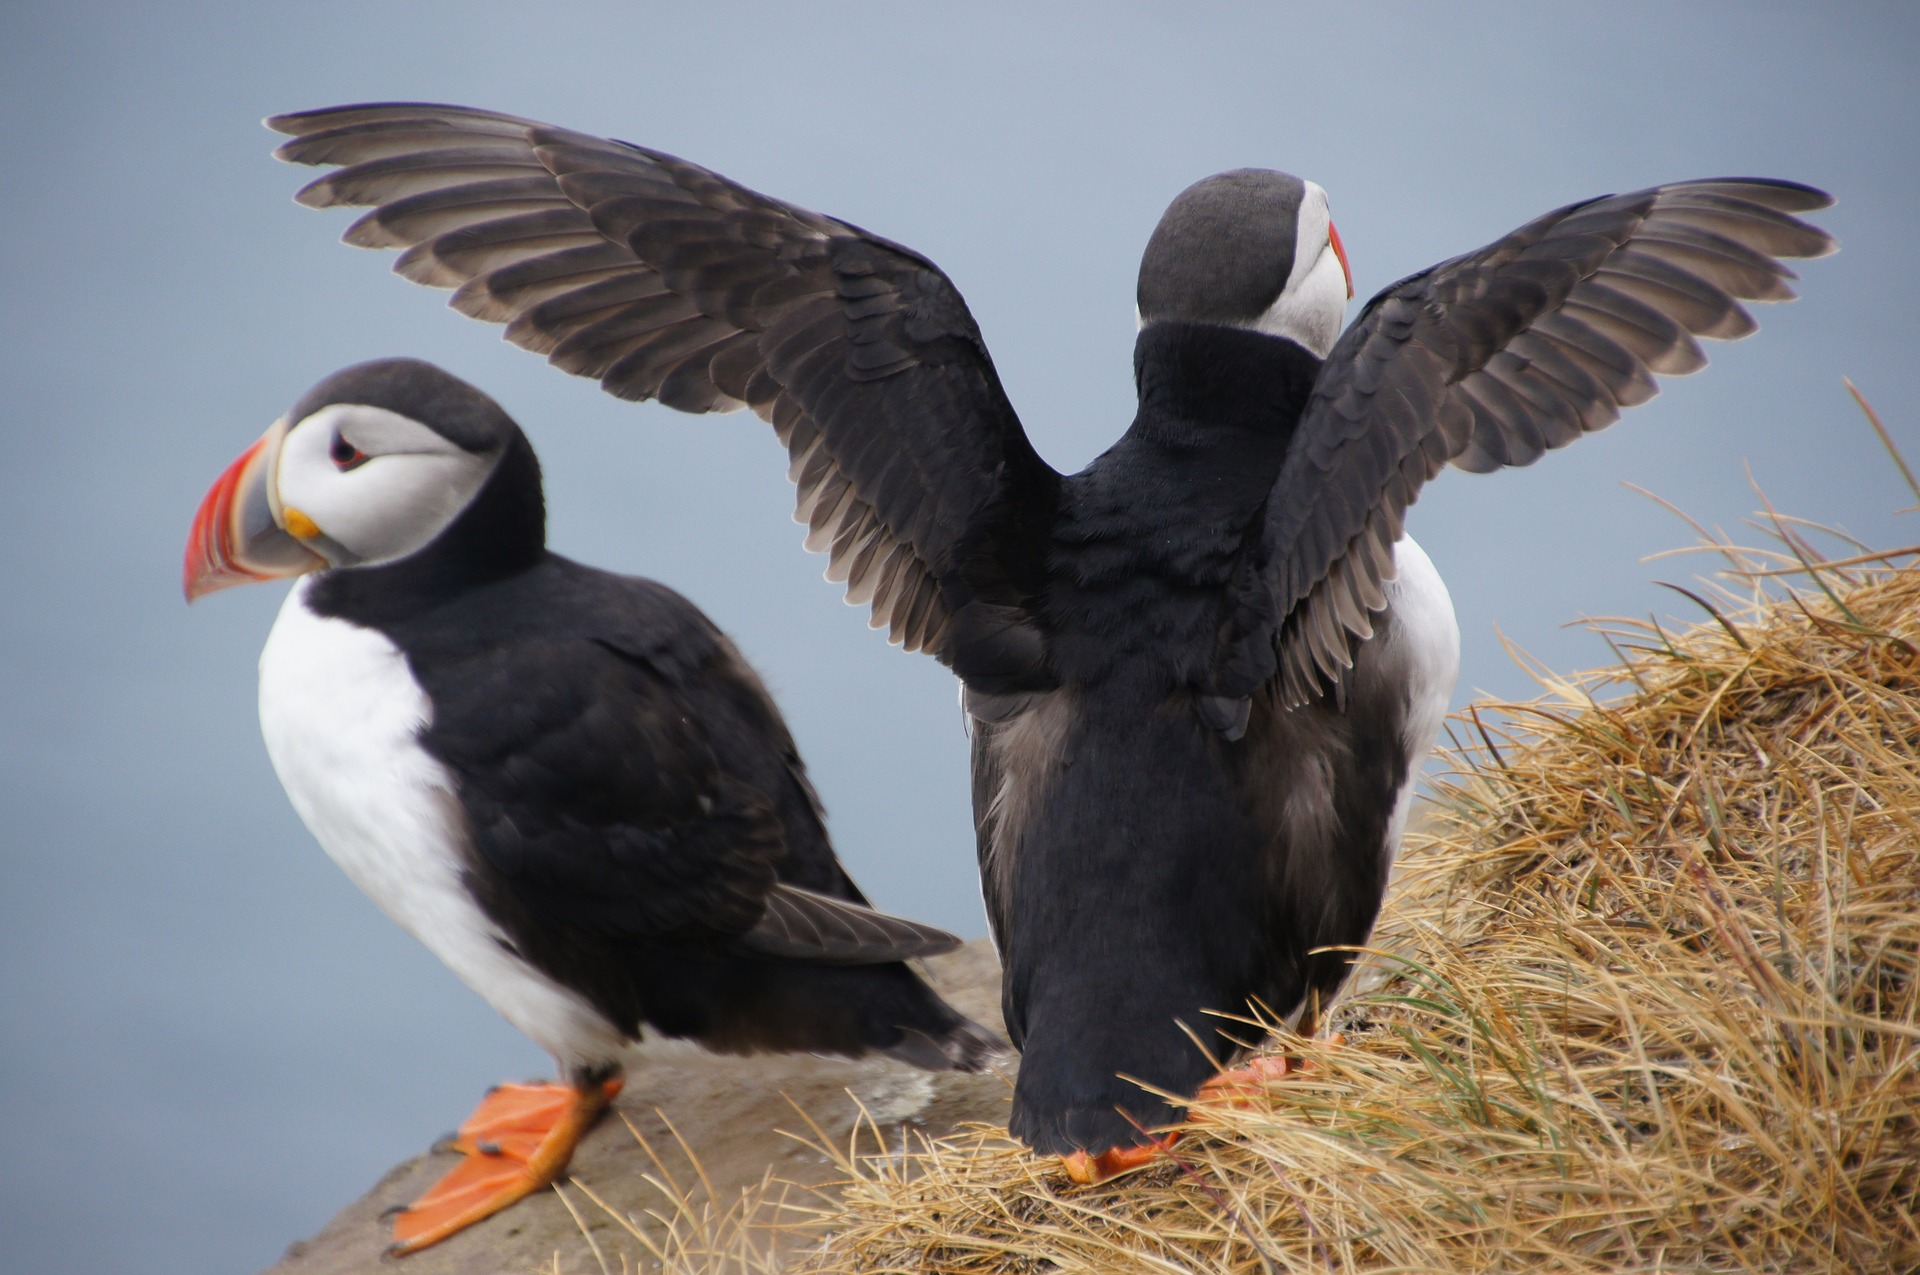 Two puffins in iceland, one spreads its wings